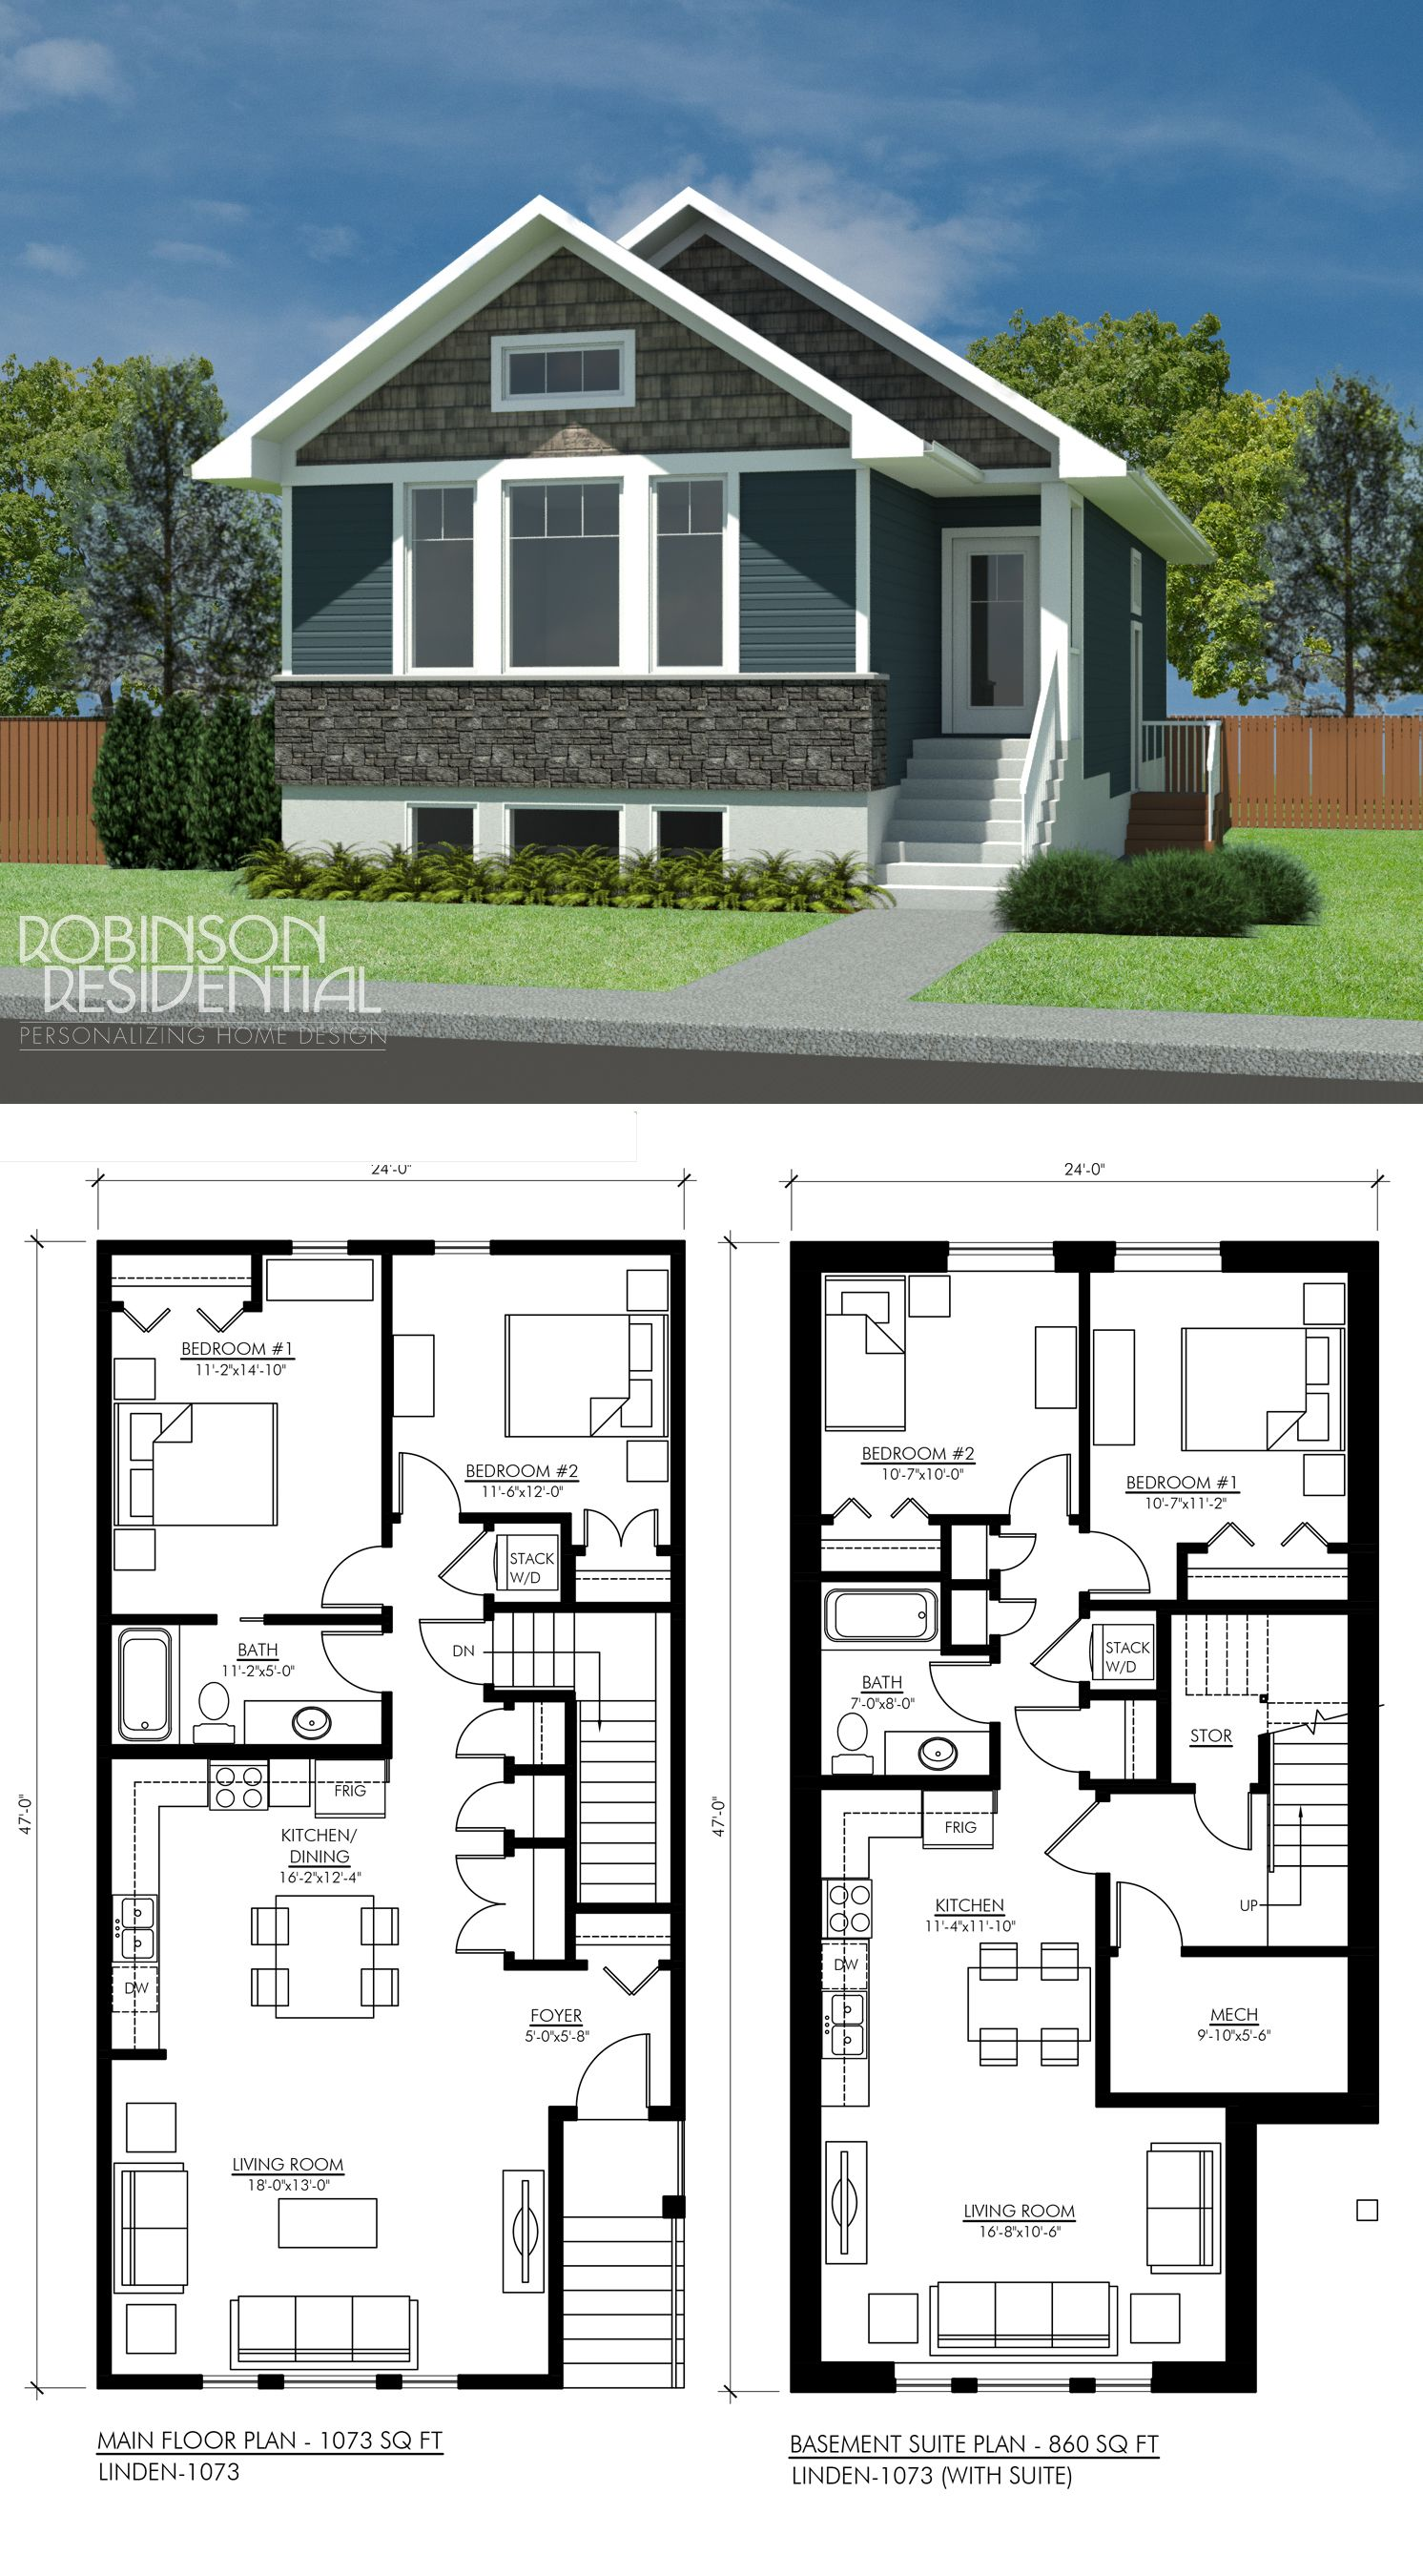 Craftsman Linden 1073 With Suite Robinson Plans Basement House Plans New House Plans House Plans